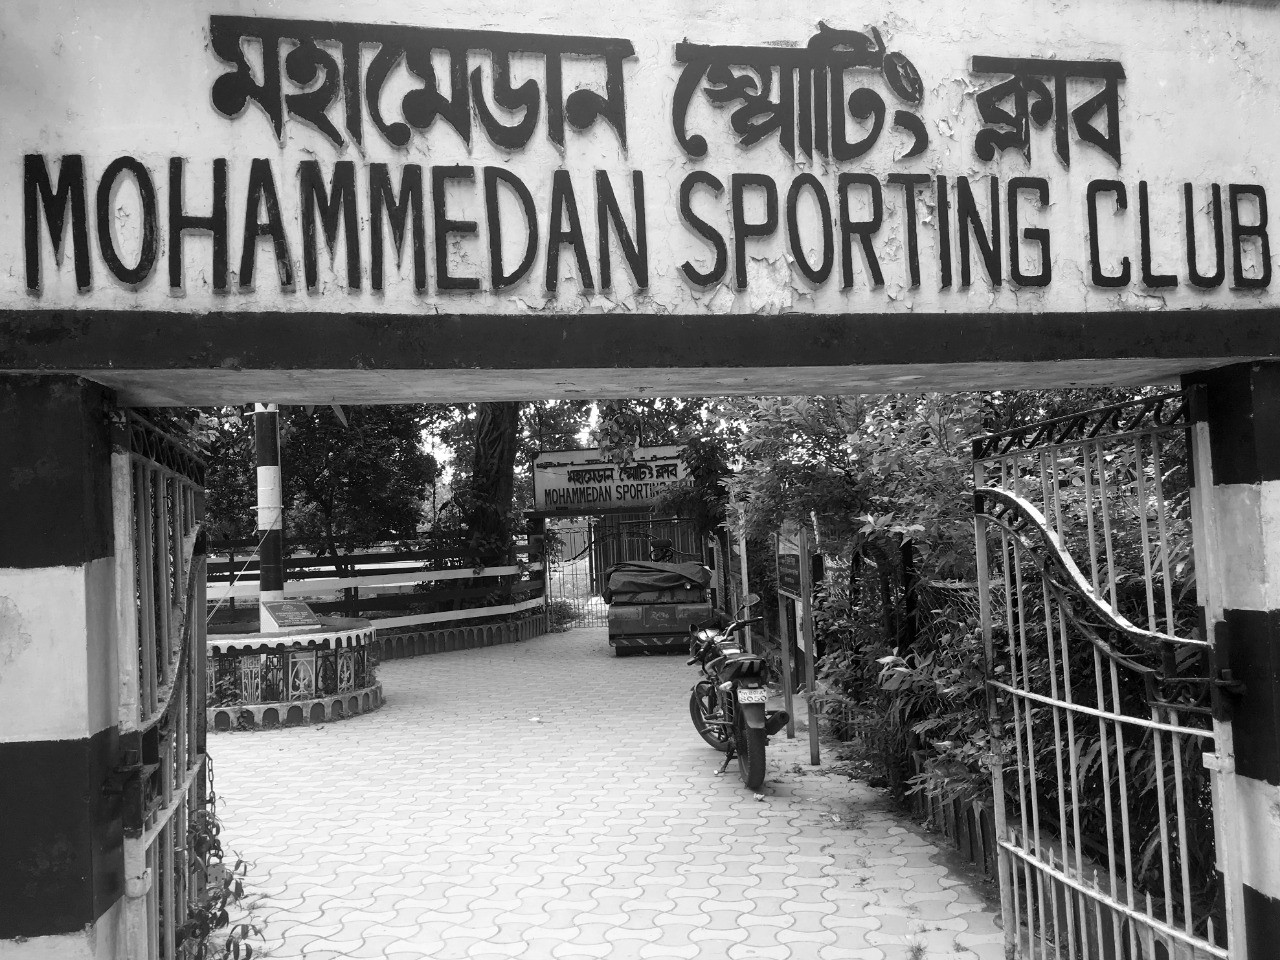 The Mohammedan Sporting clubhouse has been shut and all football training suspended